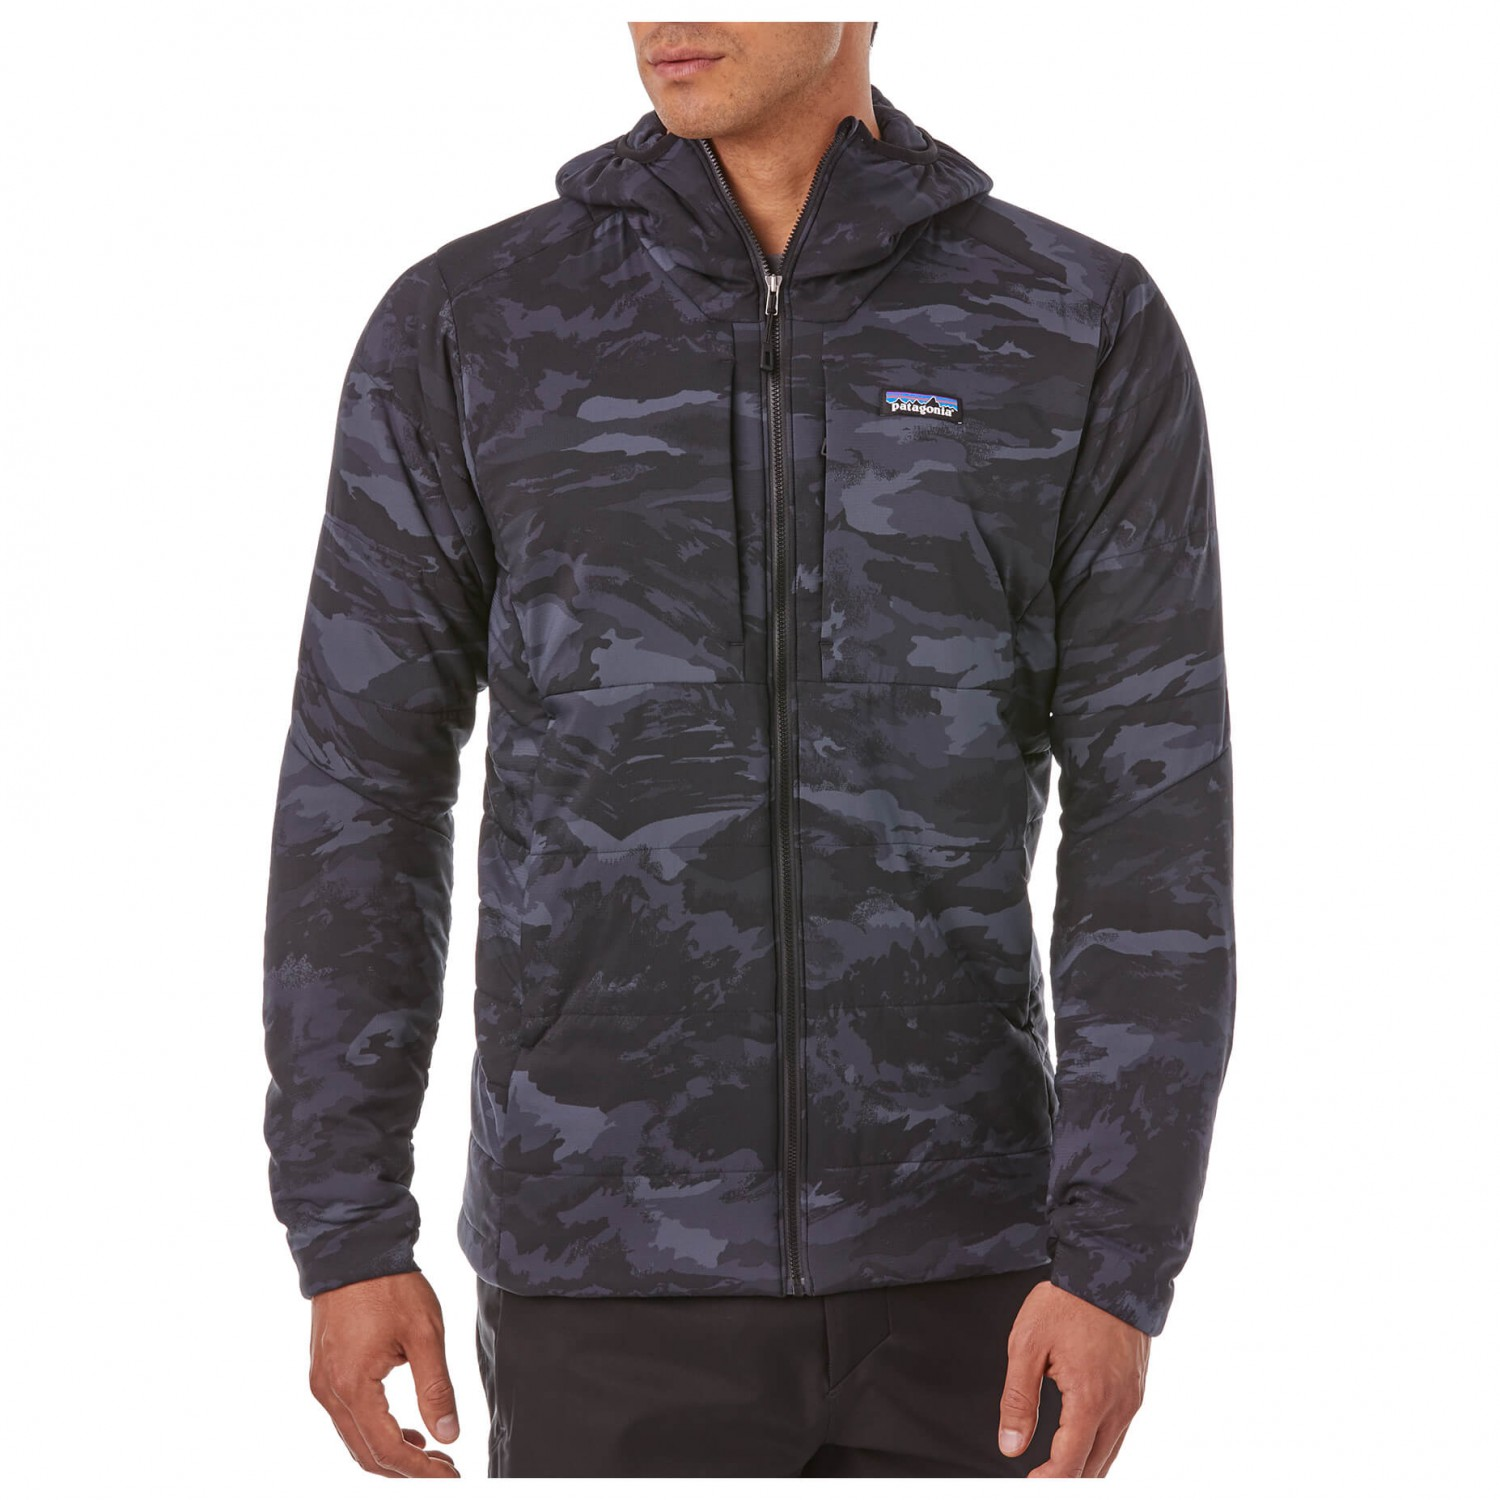 Hoody Homme Veste Air Livraison Patagonia Synthétique Nano TqwEwBa